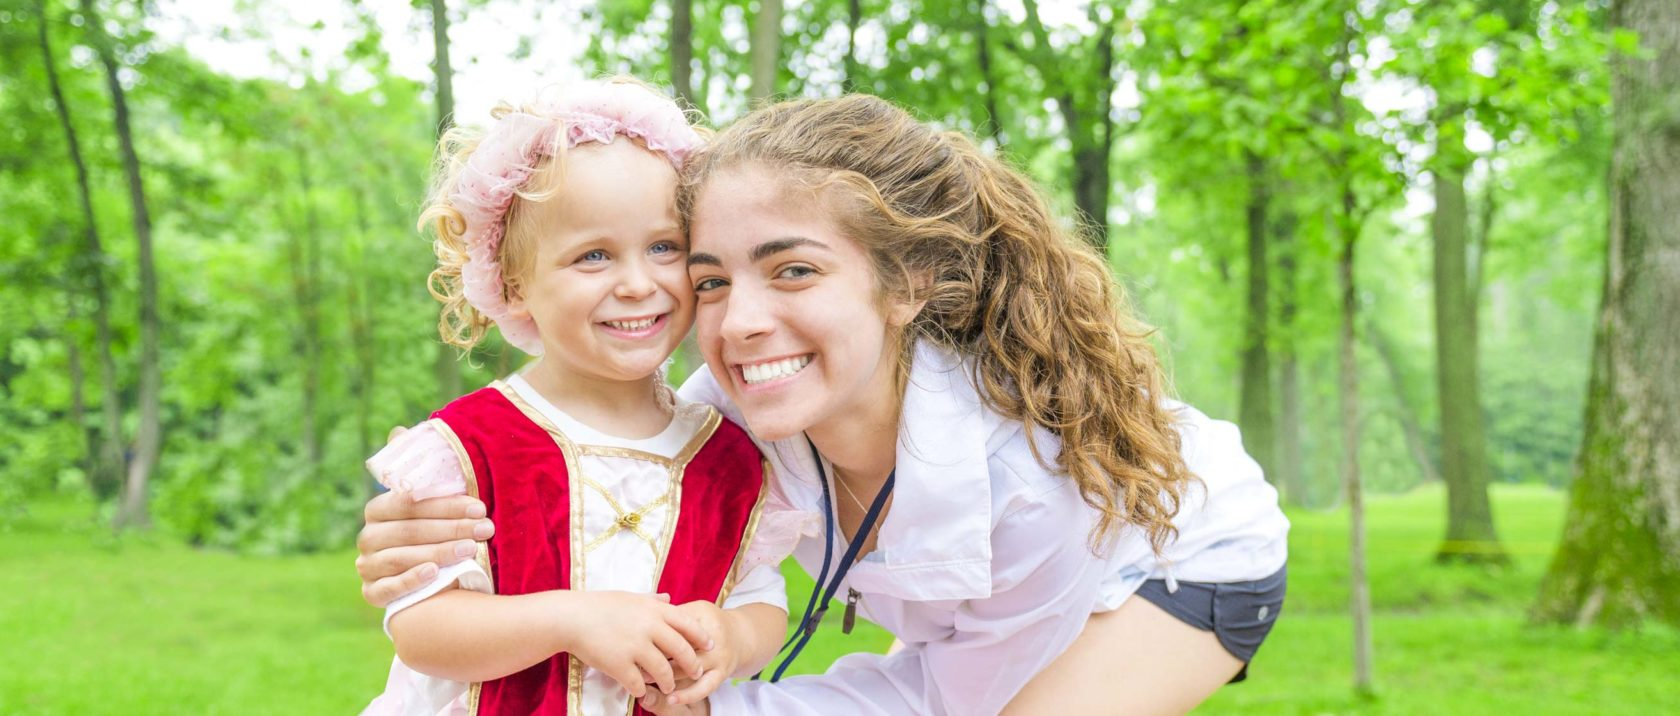 Female staff member smiling next to a young girl camper